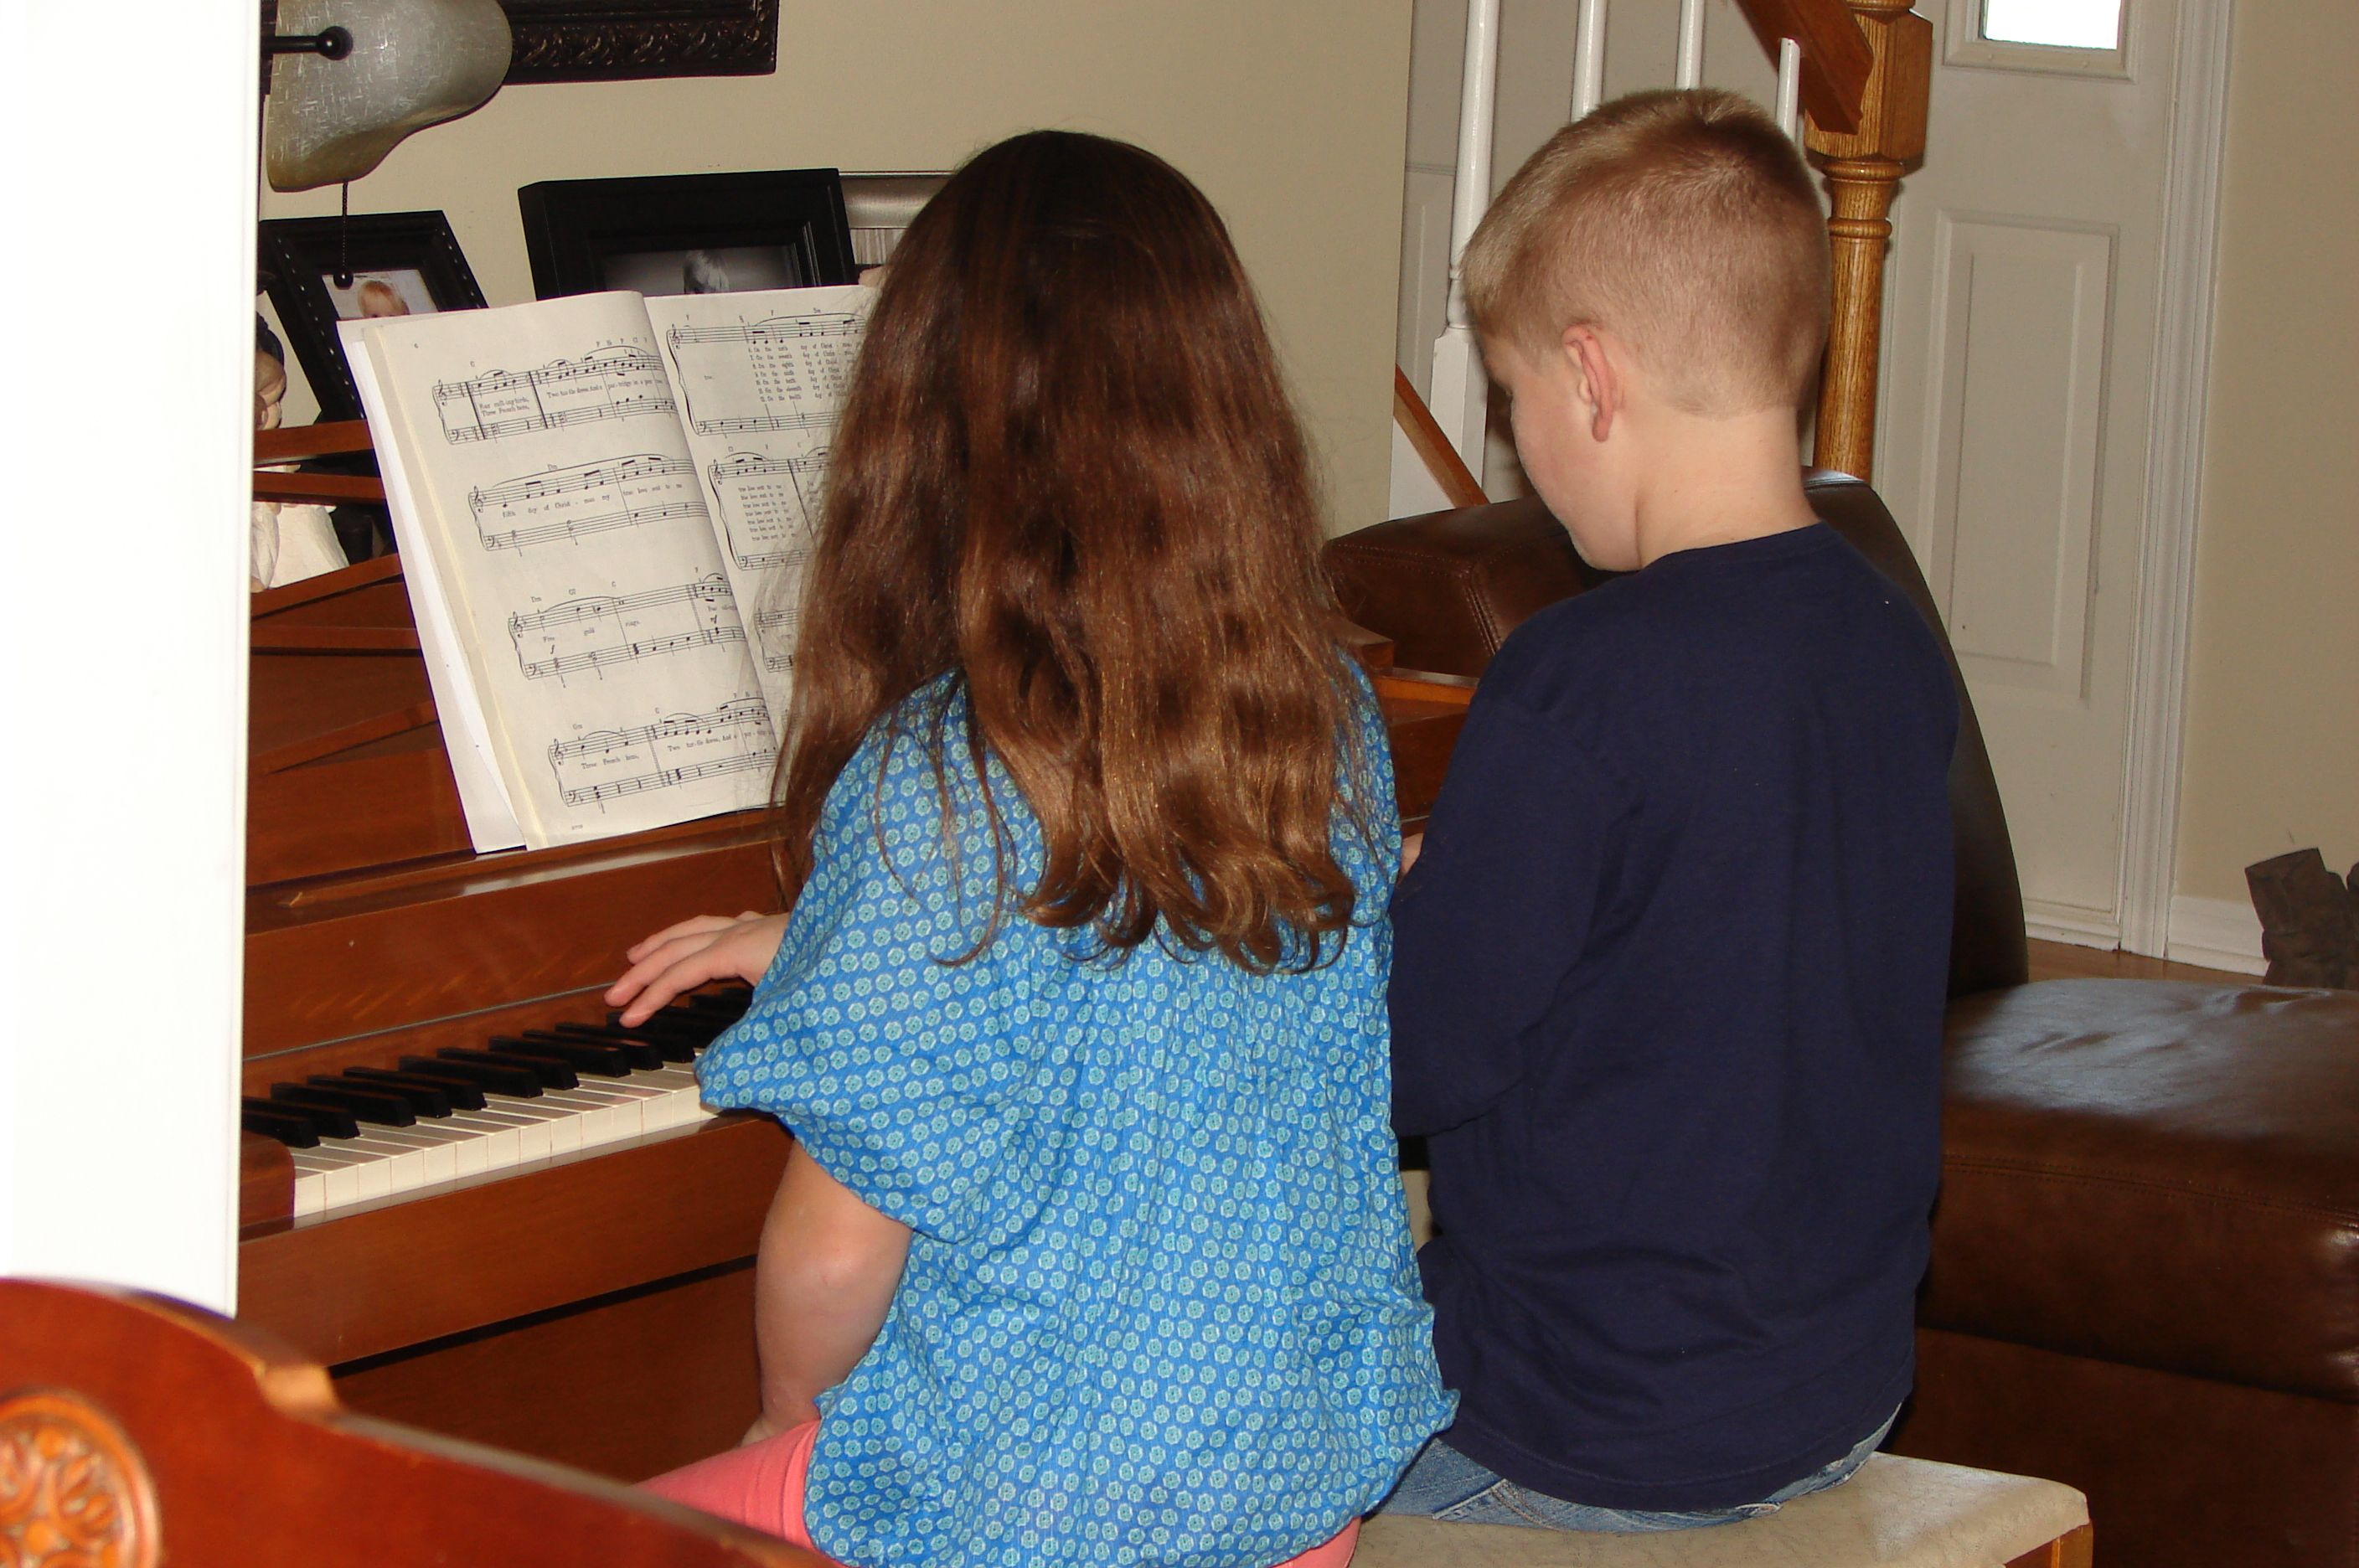 watching your grandchildren play the piano together- Priceless